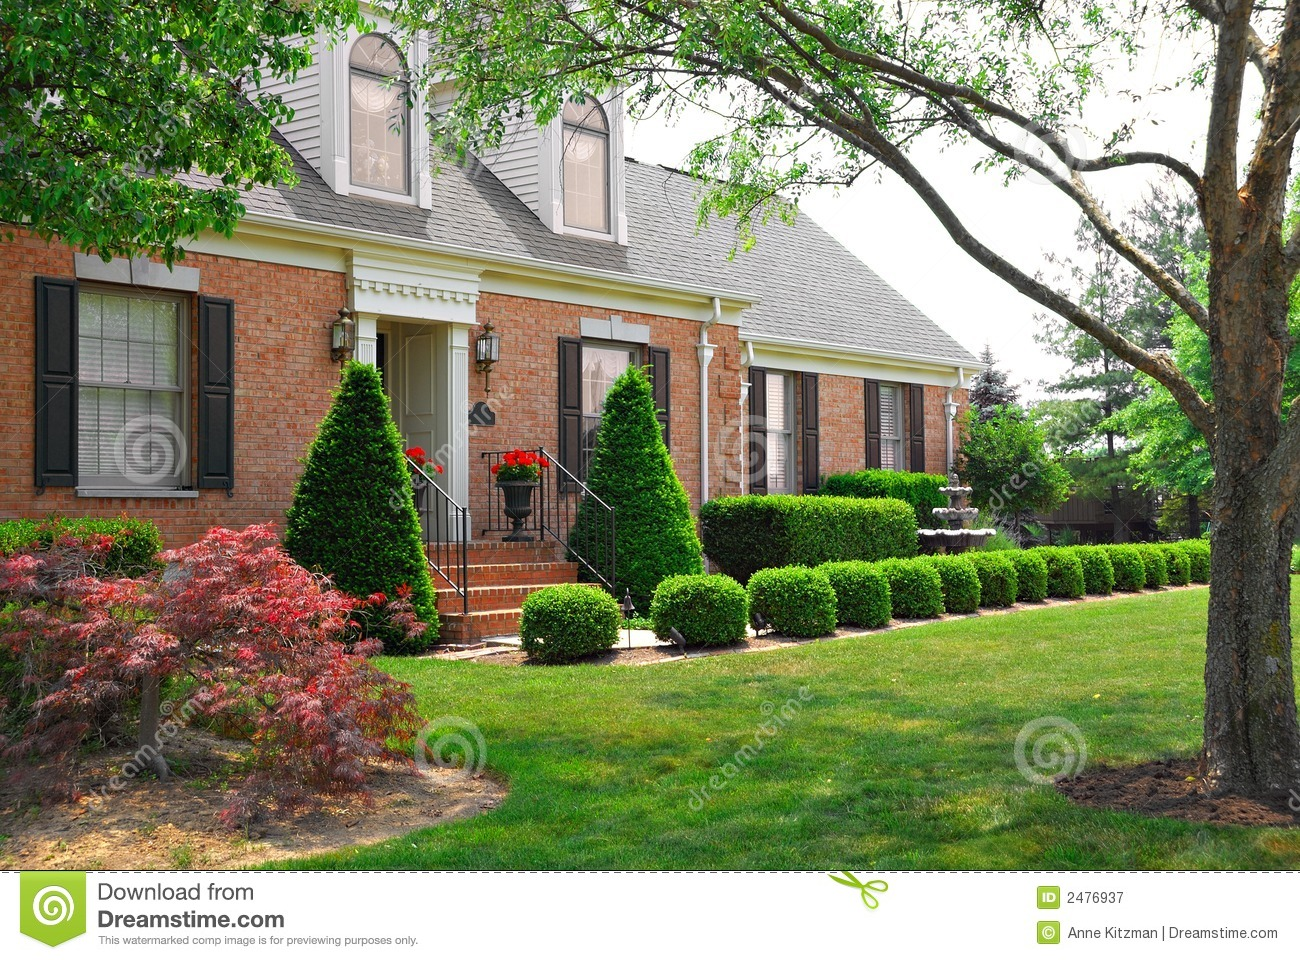 Idential 2 Story Brick Home Royalty Free Stock Photography